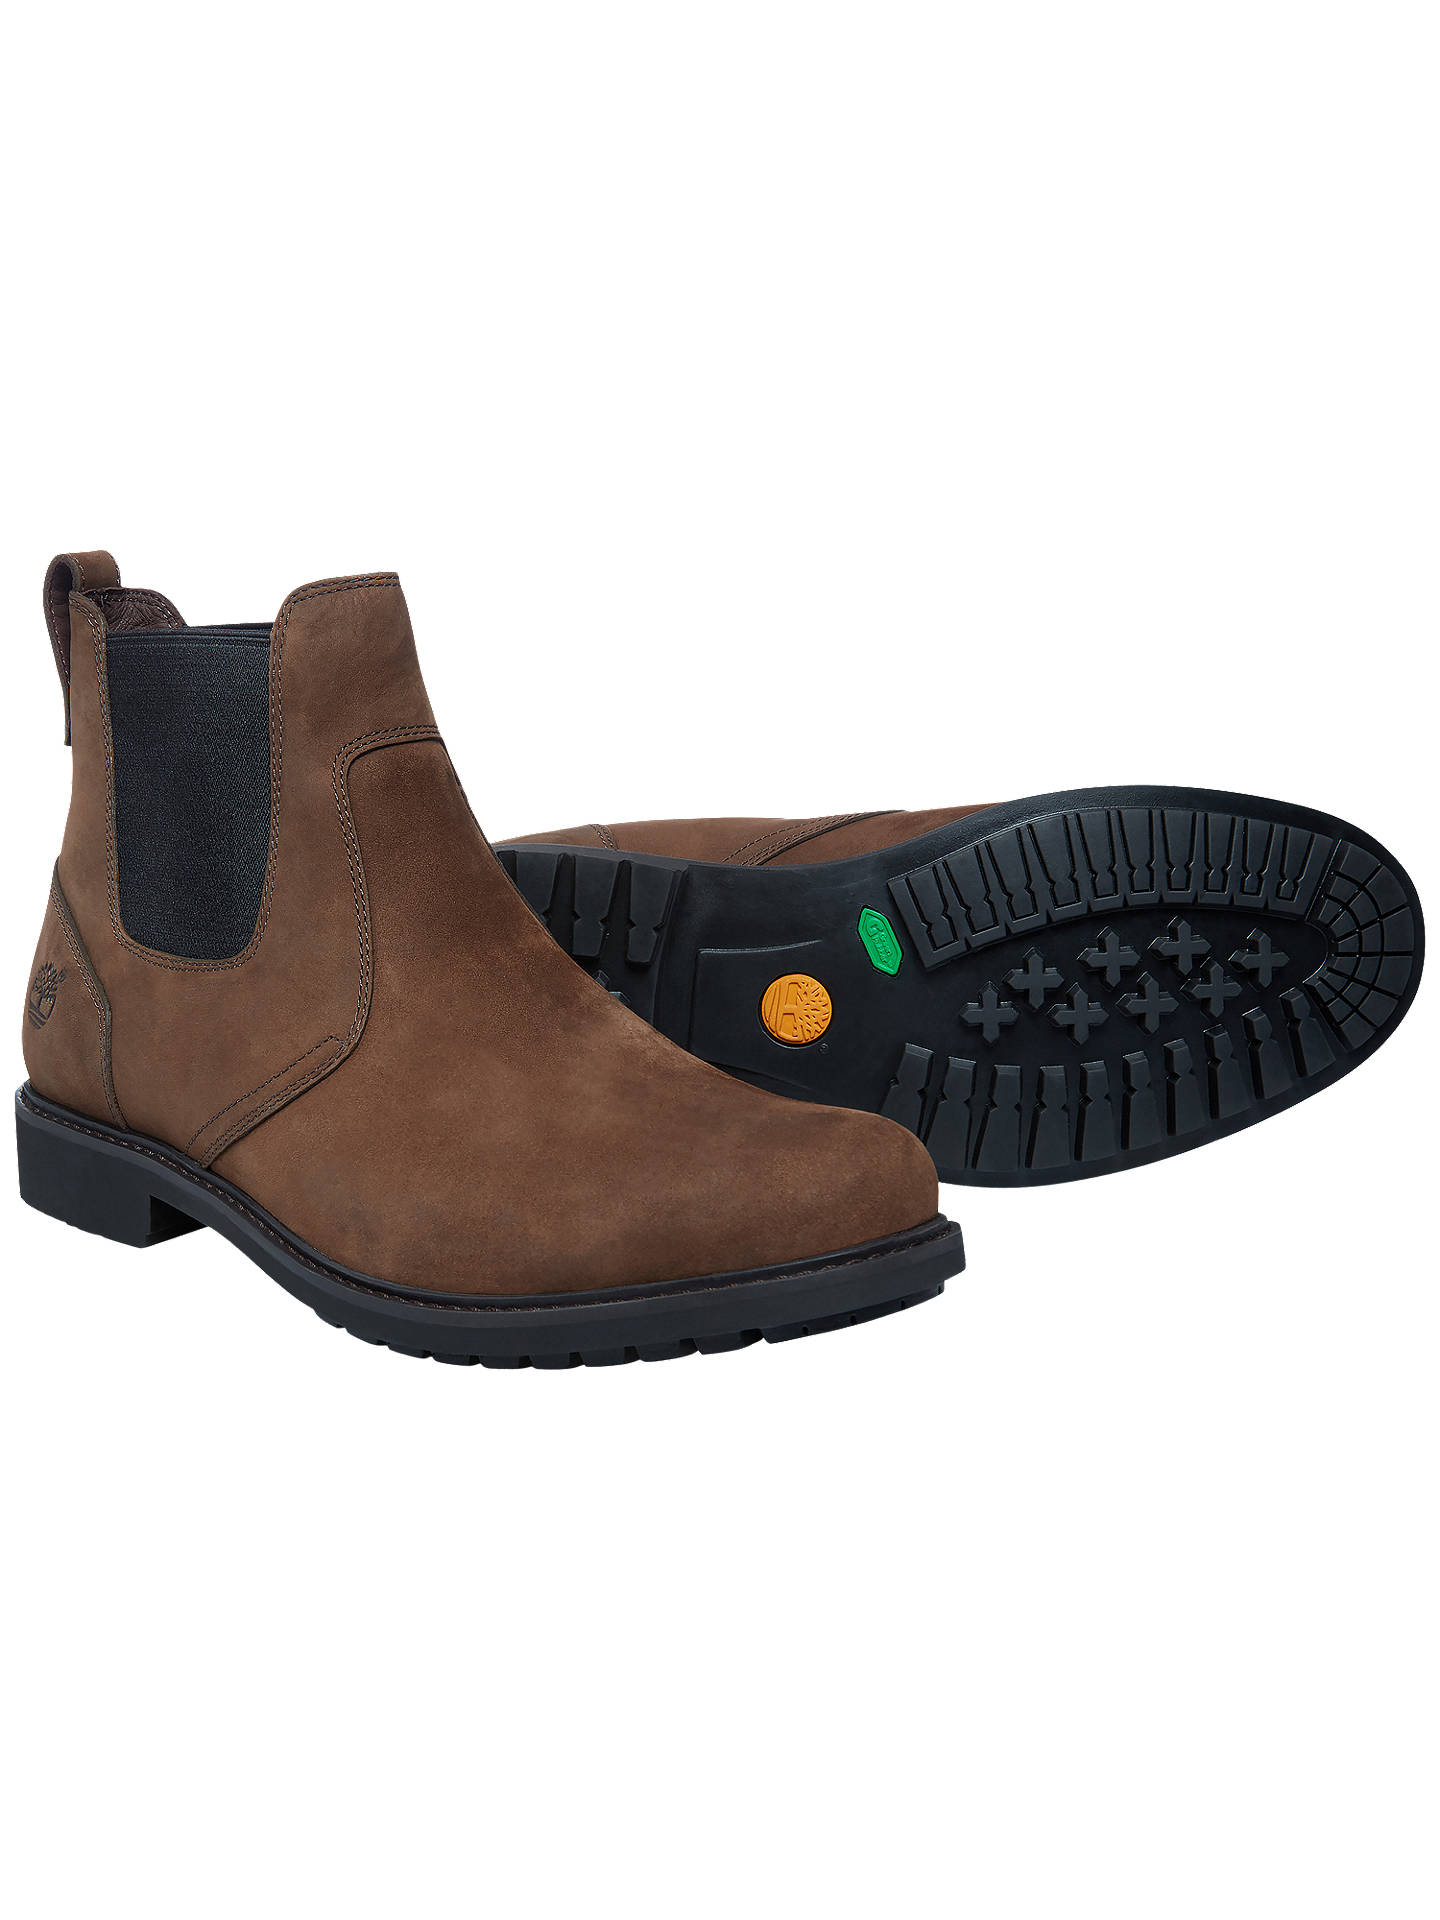 Buy Timberland Stormbuck Waterproof Chelsea Boots, Dark Brown, 8 Online at johnlewis.com